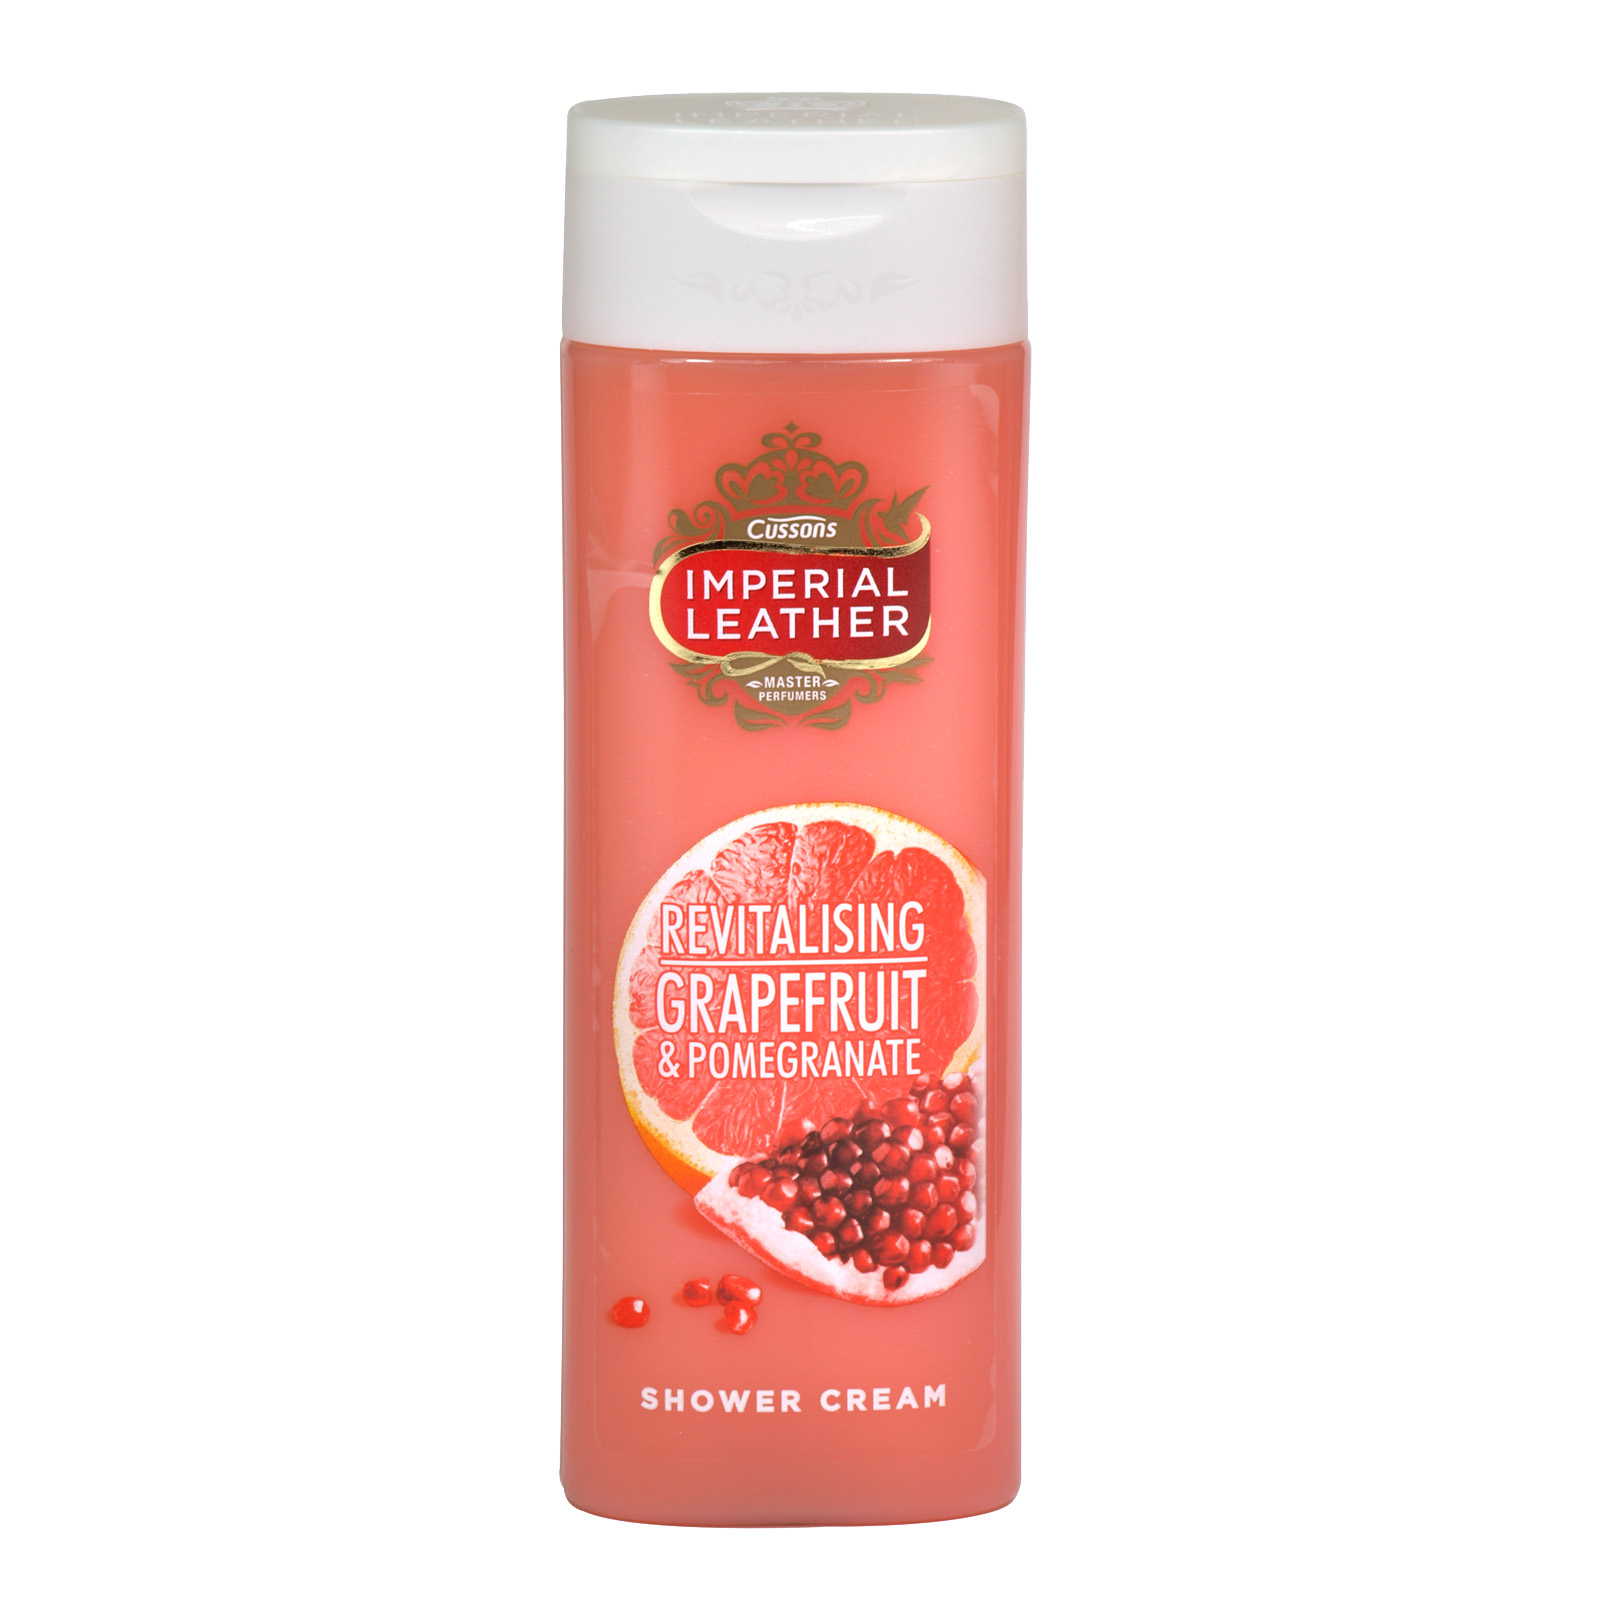 IMP LEATHER SHOWER 250ML GRAPEFRUIT+POMEGRANATE X6